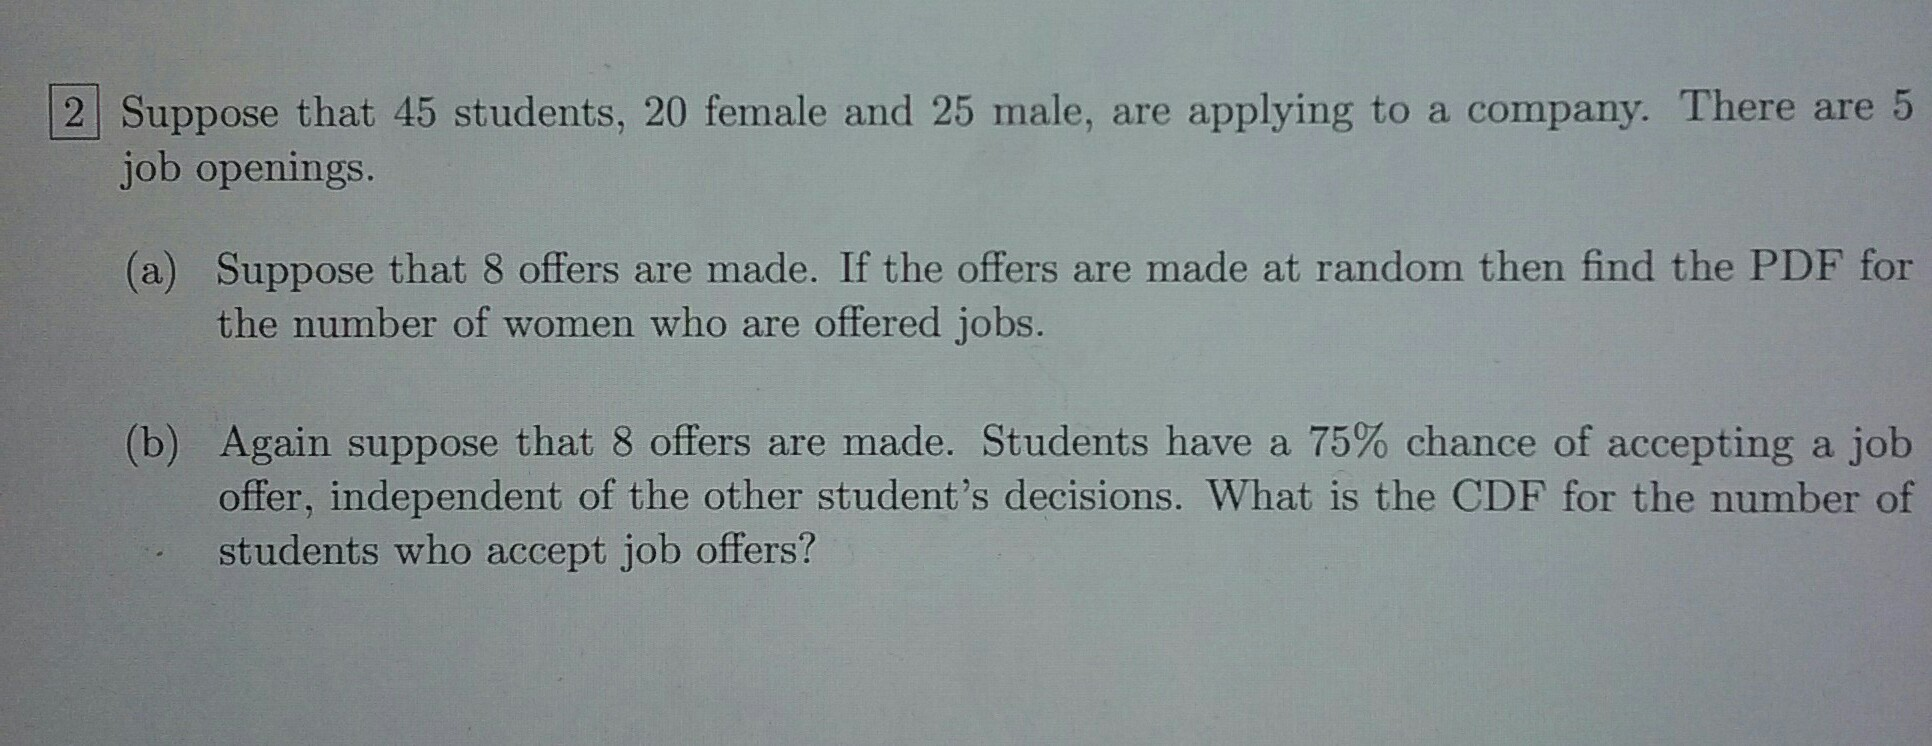 2 Suppose that 45 students 20 female